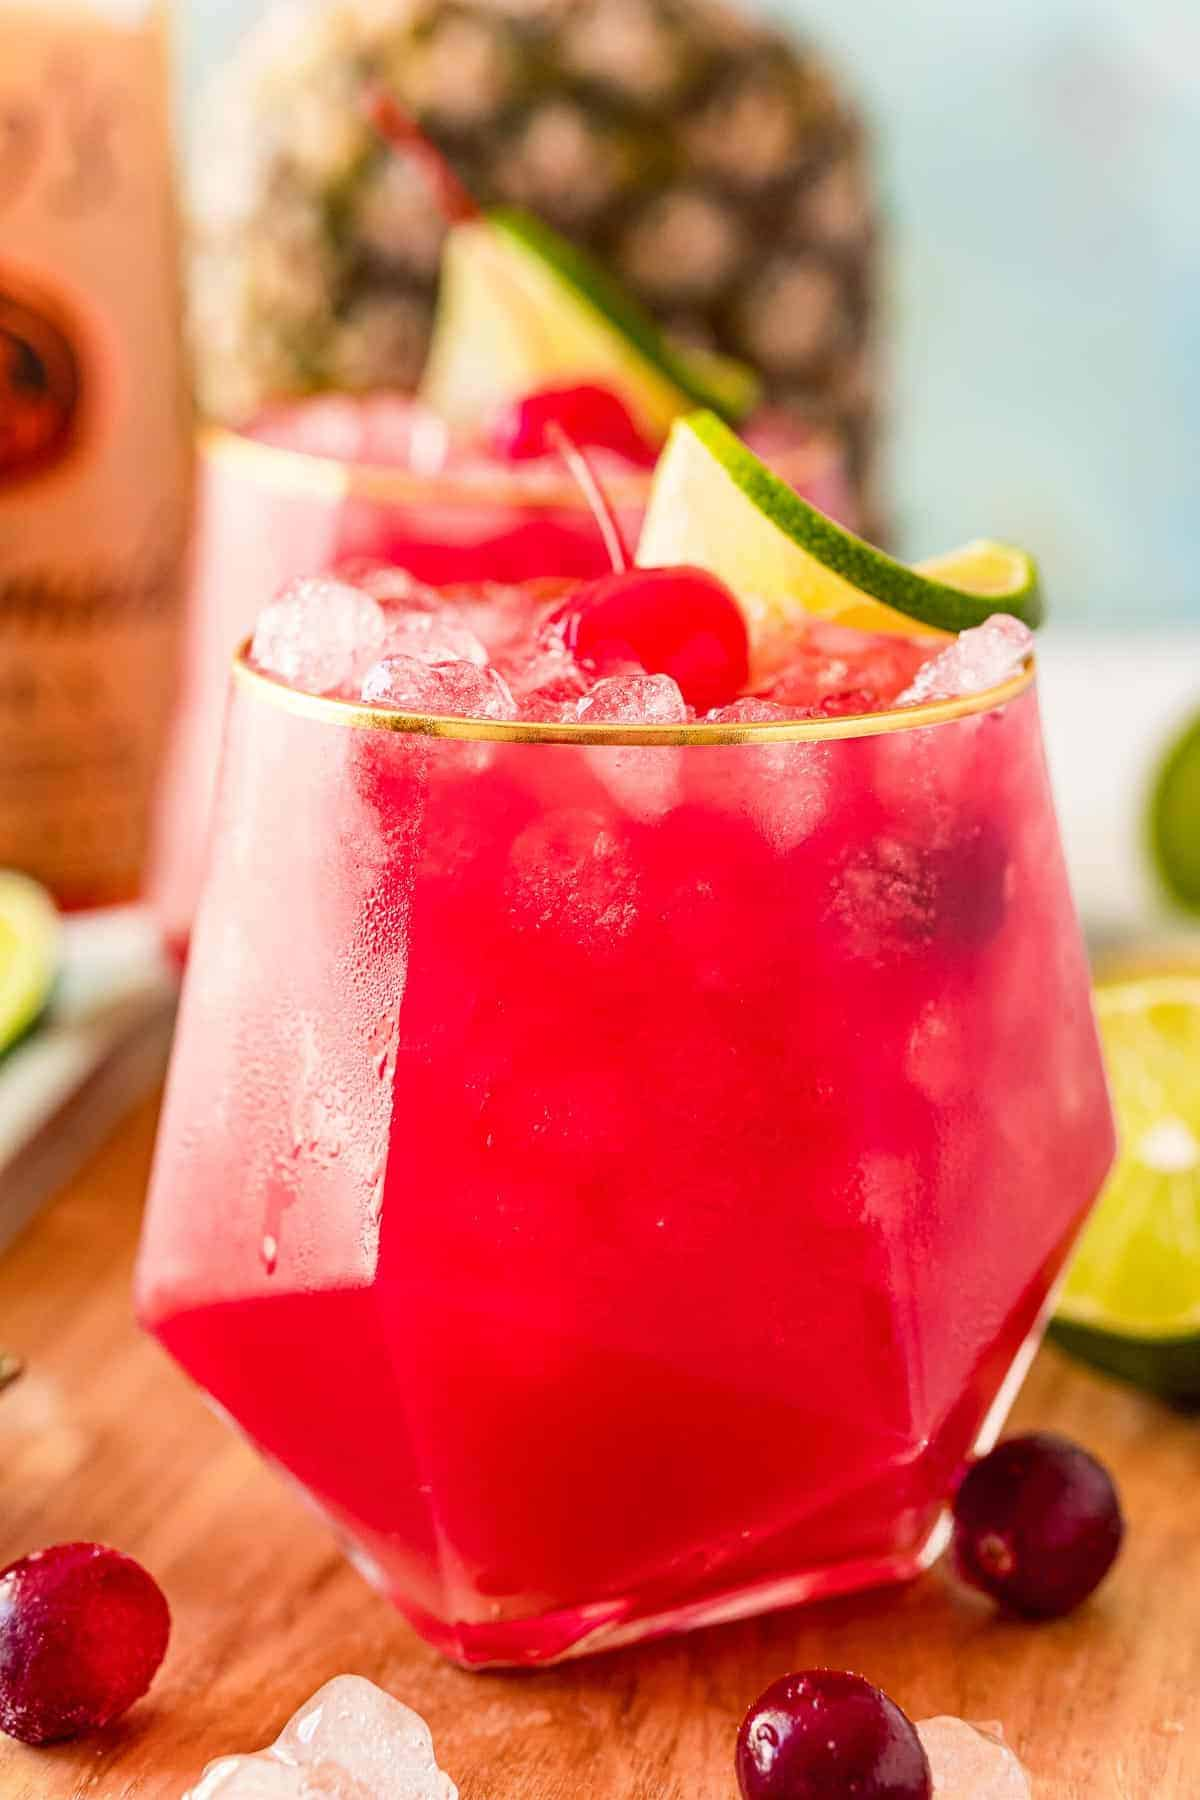 Close up of a bay breeze cocktail garnished with a lime and a cherry.